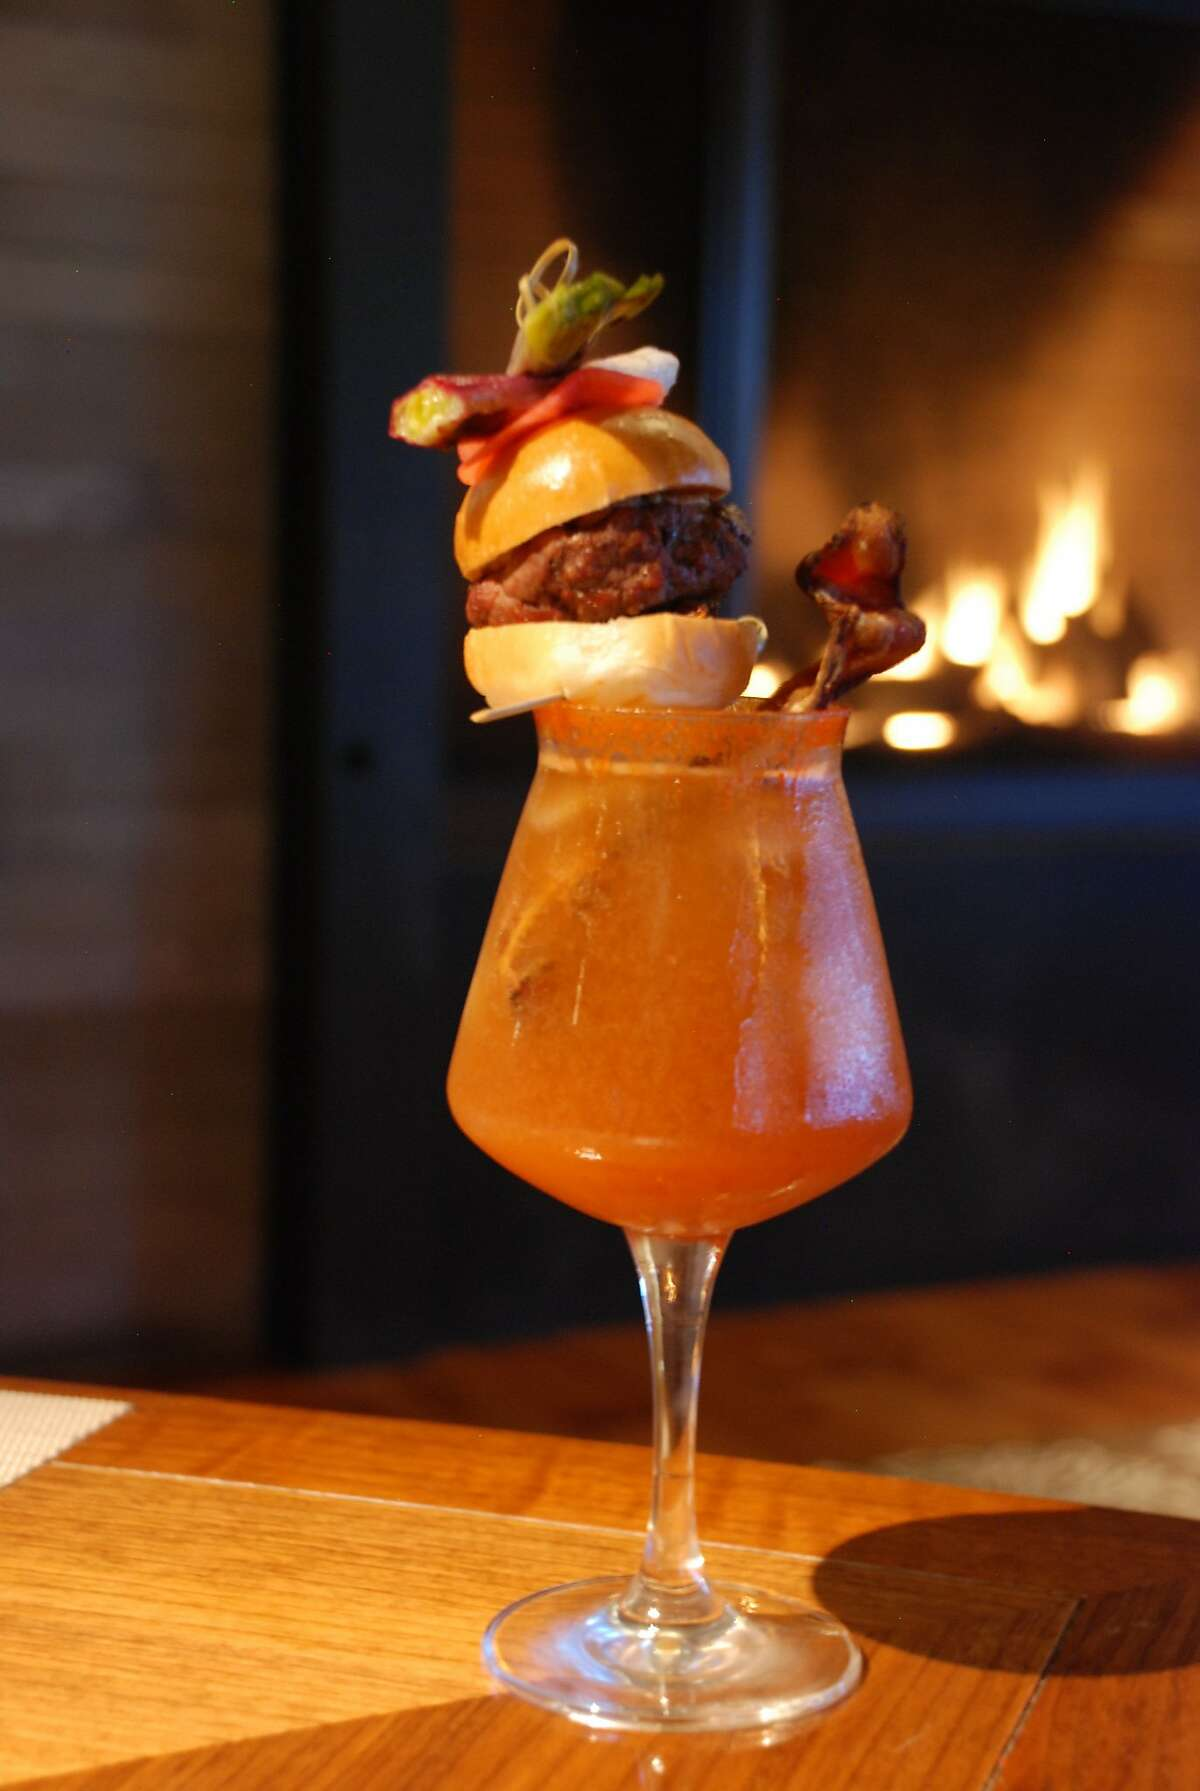 The Rosewood Sand Hill hotel has come up with a special Super Bowl drink, the Smoke & Fire, combining bourbon and beer, and topped by a slider with bacon.